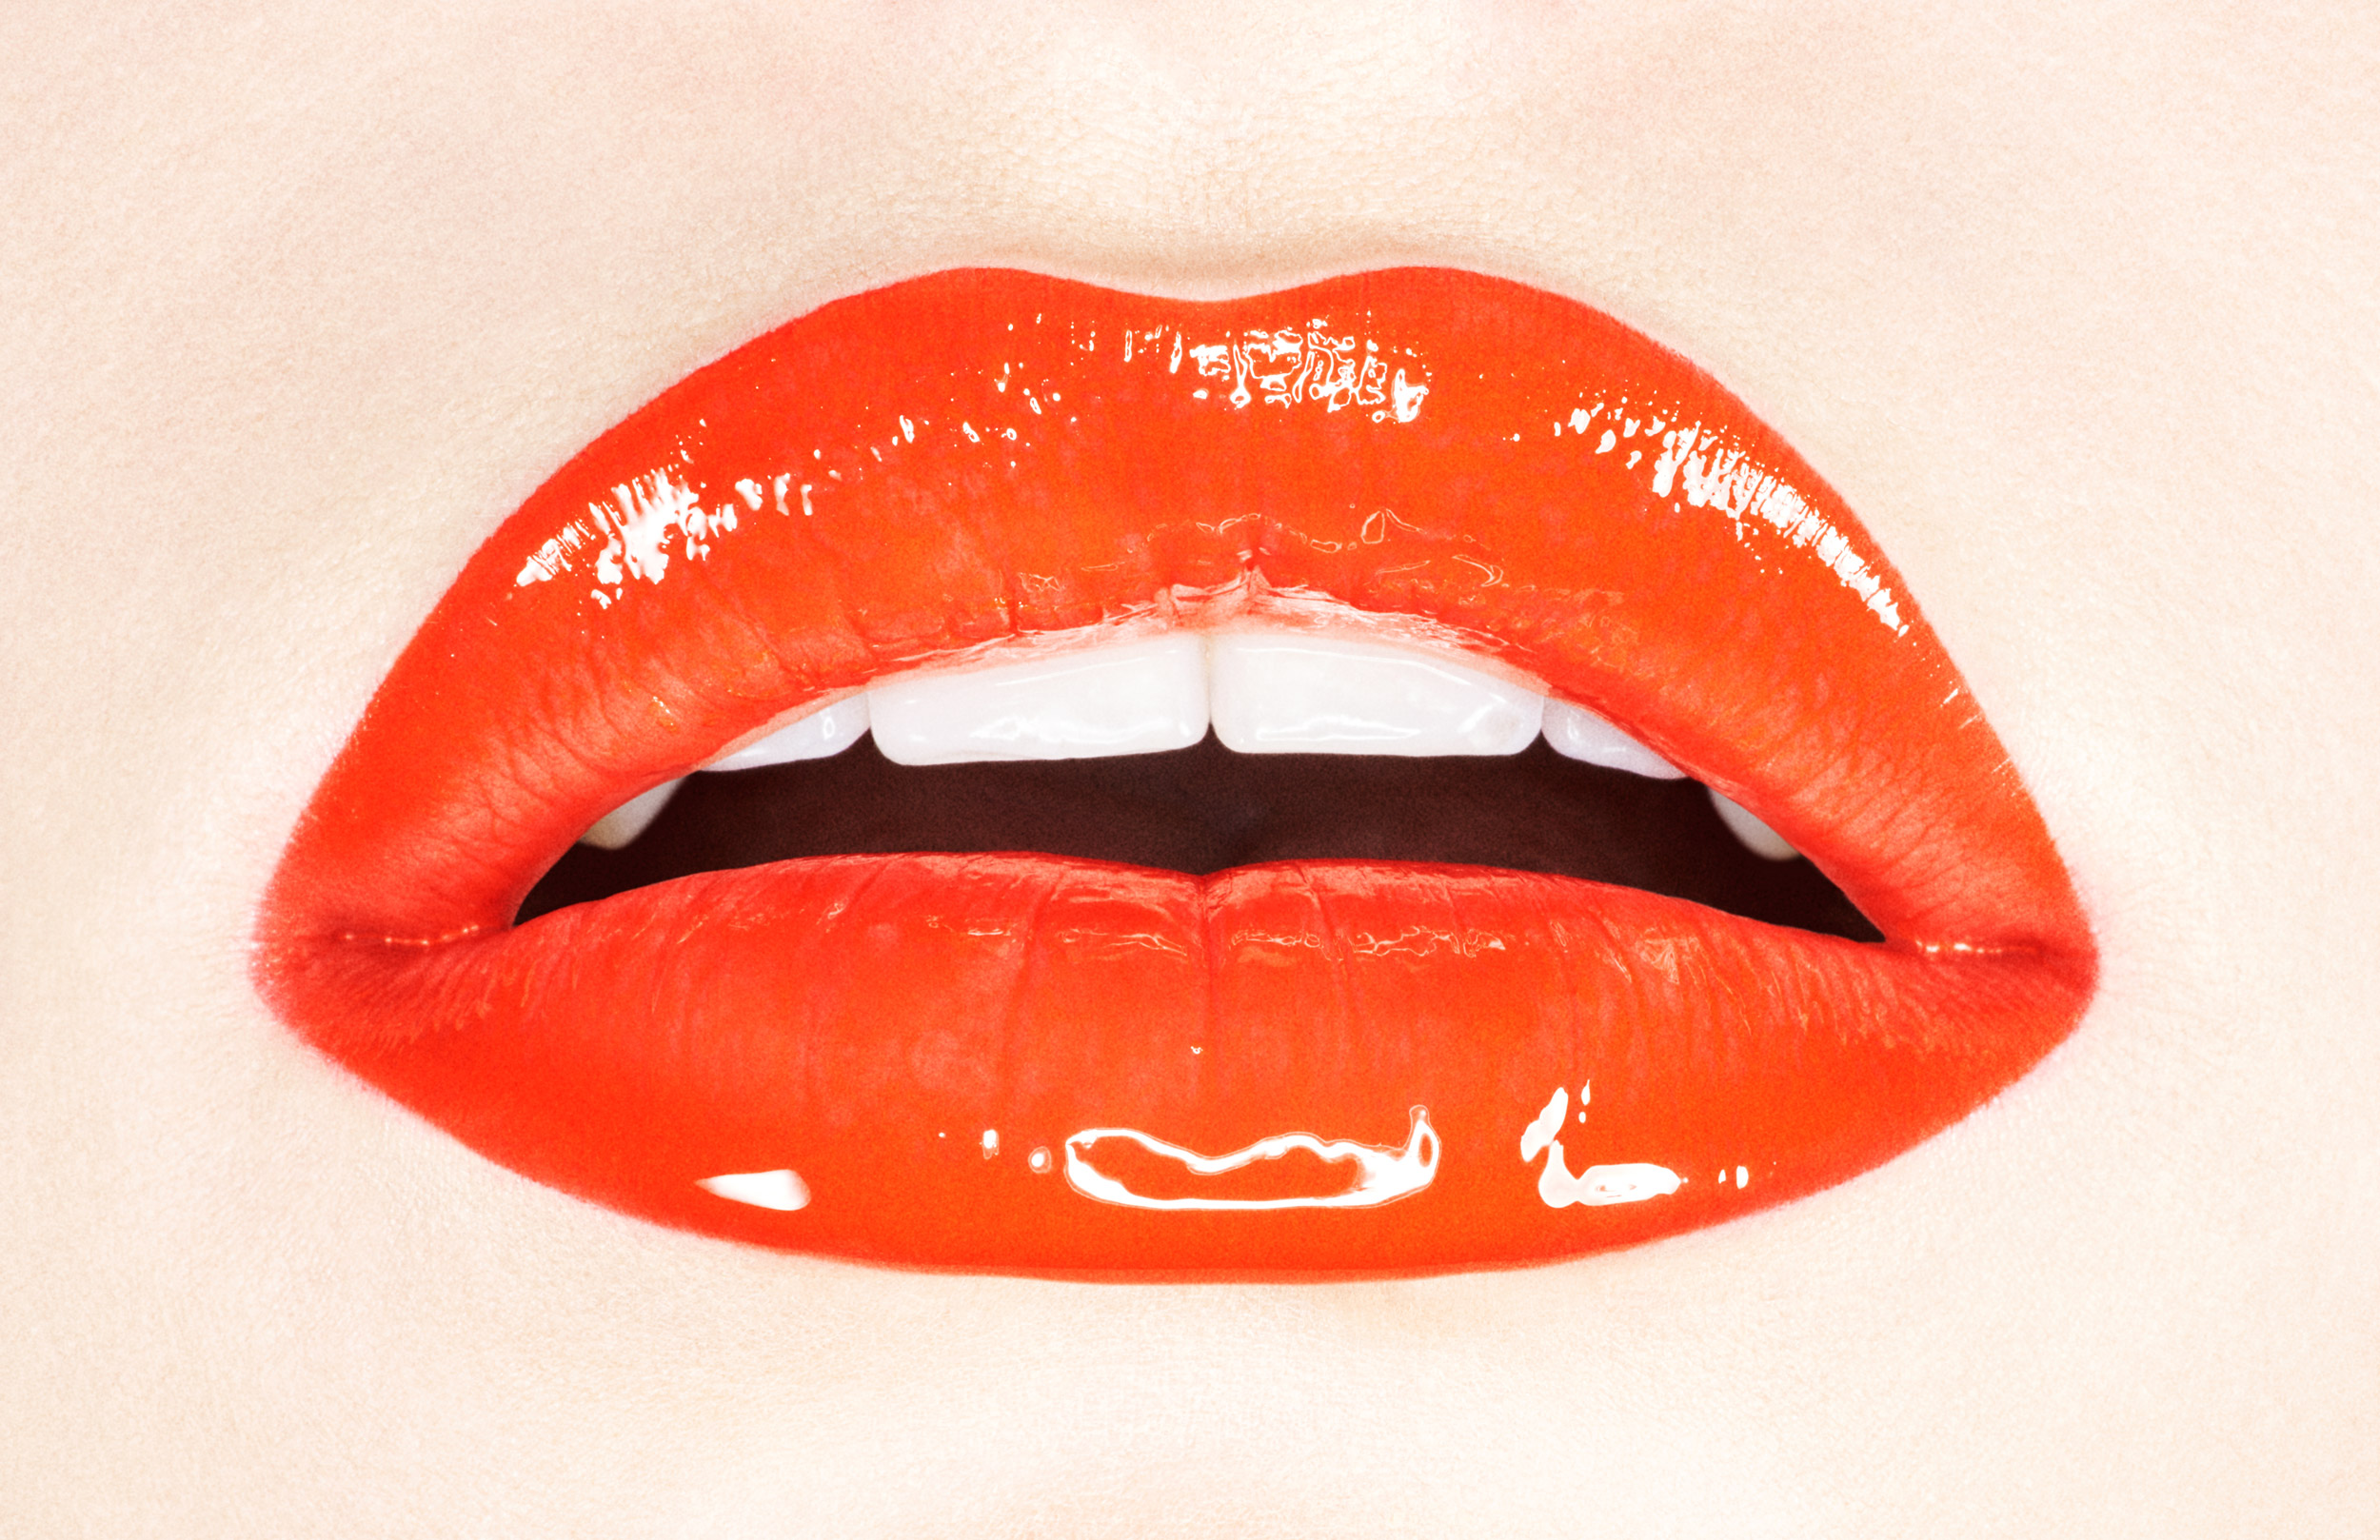 Musilek-Stan-Fenty-Beauty-Rihanna-Red-Lips-Juicy-Close-Up-Beauty-Photographer-Advertising